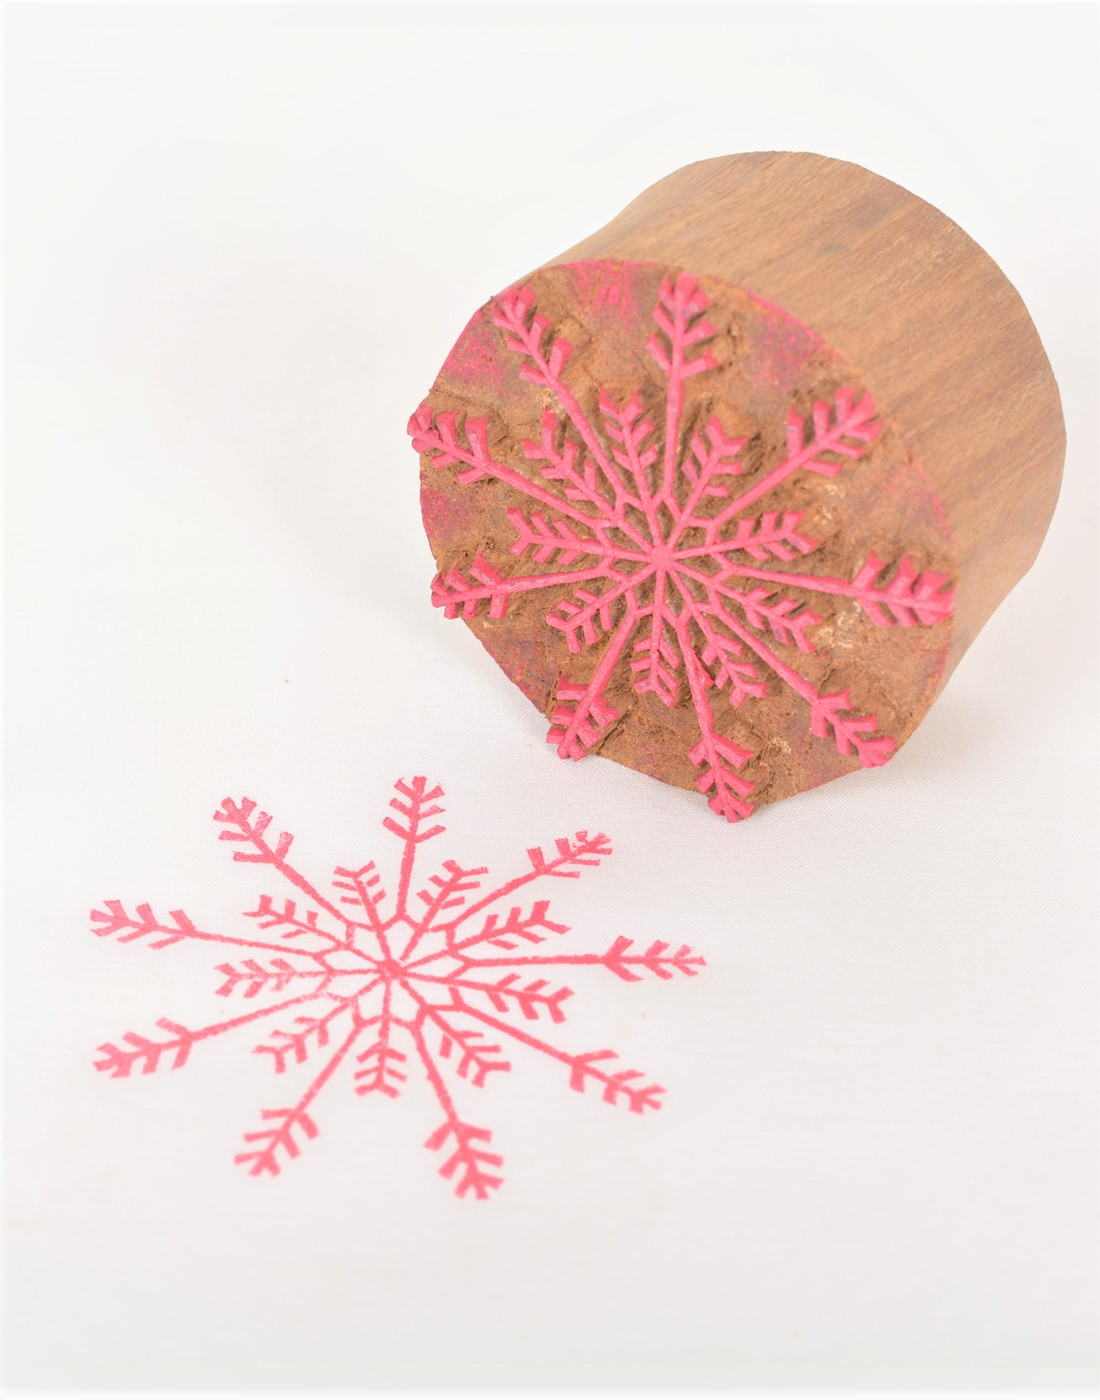 Printing Blocks for Fabric Floral Designs